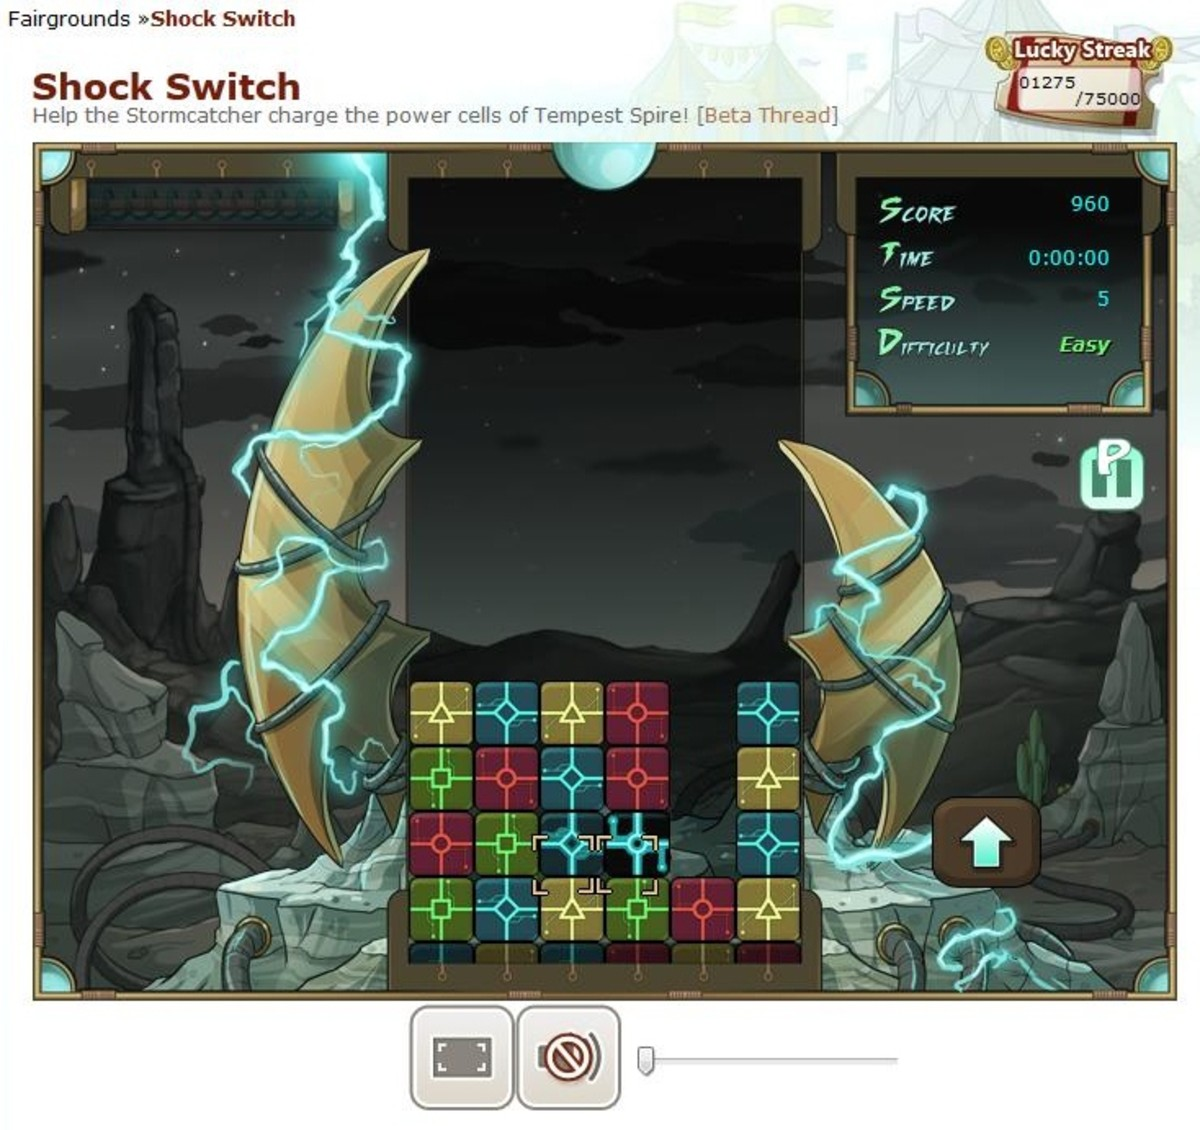 Shock Switch is great for players who like fast-paced games with payout.